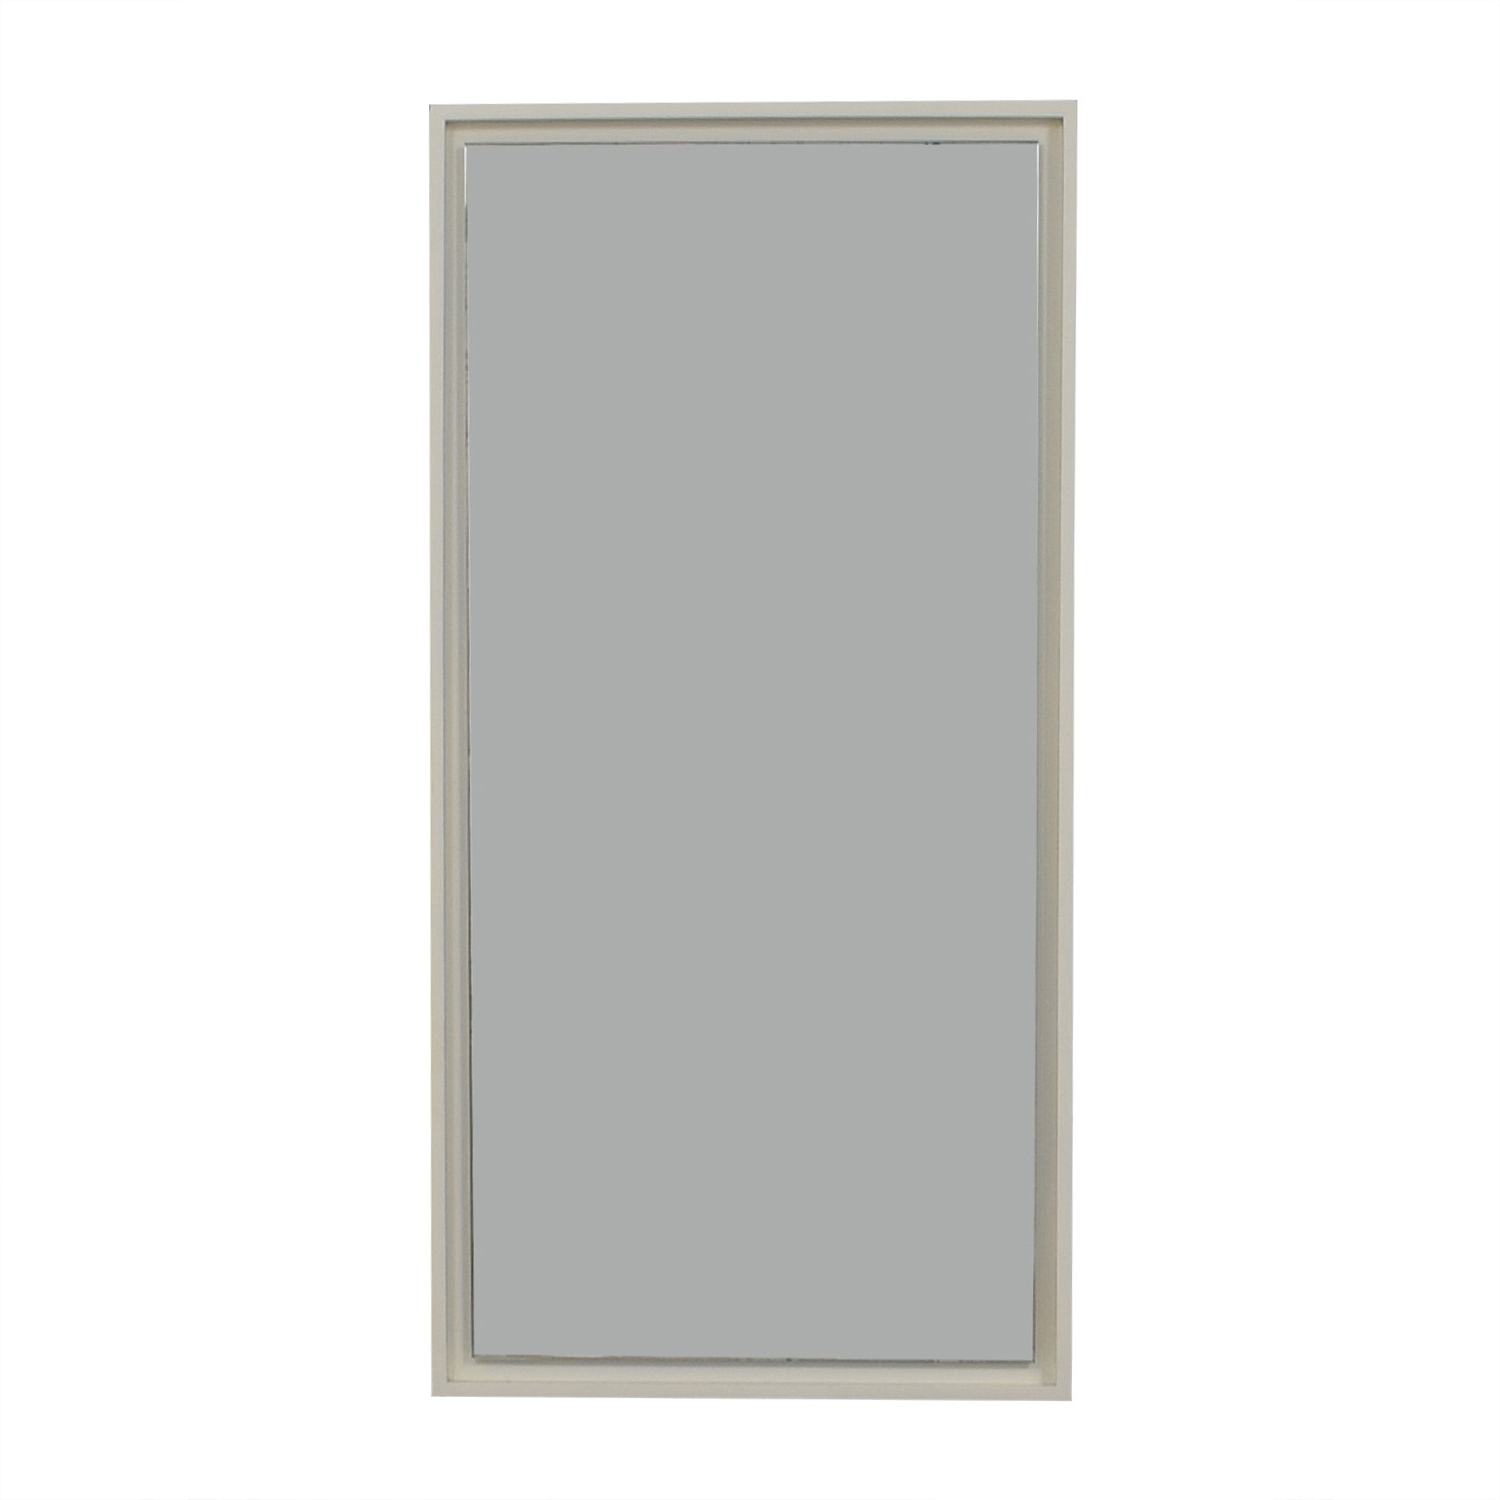 [%47% Off – West Elm West Elm White Lacquer Floating Wood Wall Mirror / Decor With Popular West Elm Wall Mirrors|west Elm Wall Mirrors Regarding Most Current 47% Off – West Elm West Elm White Lacquer Floating Wood Wall Mirror / Decor|preferred West Elm Wall Mirrors Inside 47% Off – West Elm West Elm White Lacquer Floating Wood Wall Mirror / Decor|best And Newest 47% Off – West Elm West Elm White Lacquer Floating Wood Wall Mirror / Decor Within West Elm Wall Mirrors%] (View 8 of 20)